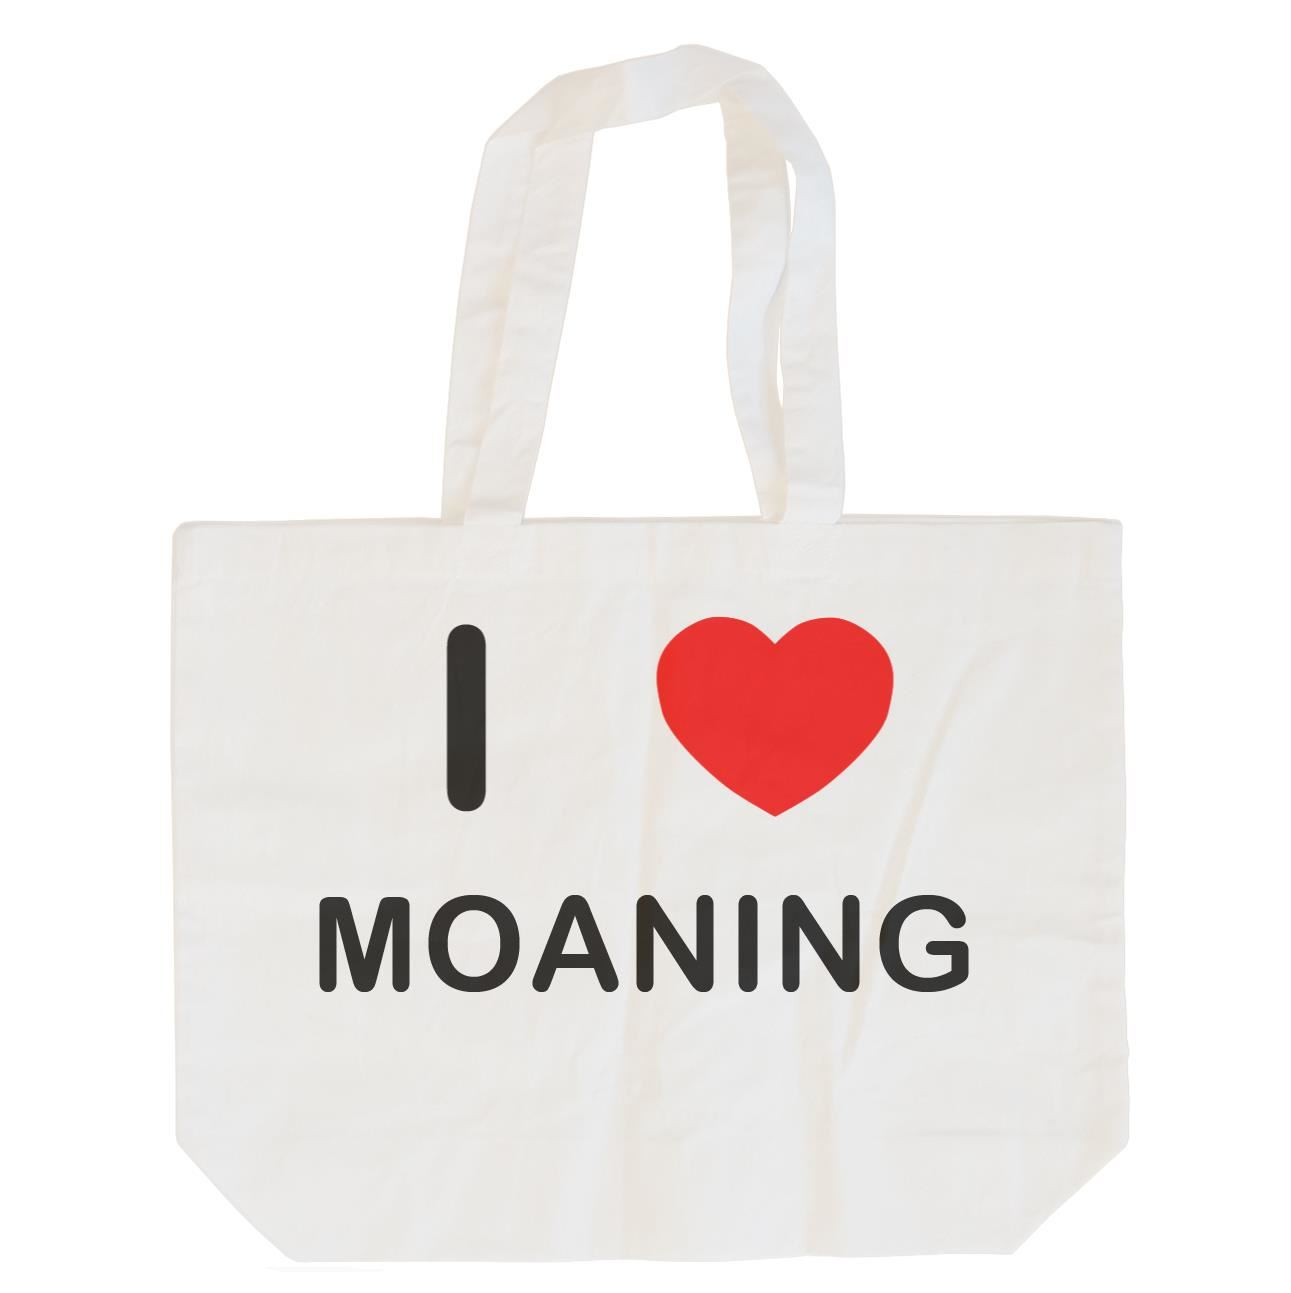 I Love Moaning - Cotton Bag | Size choice Tote, Shopper or Sling